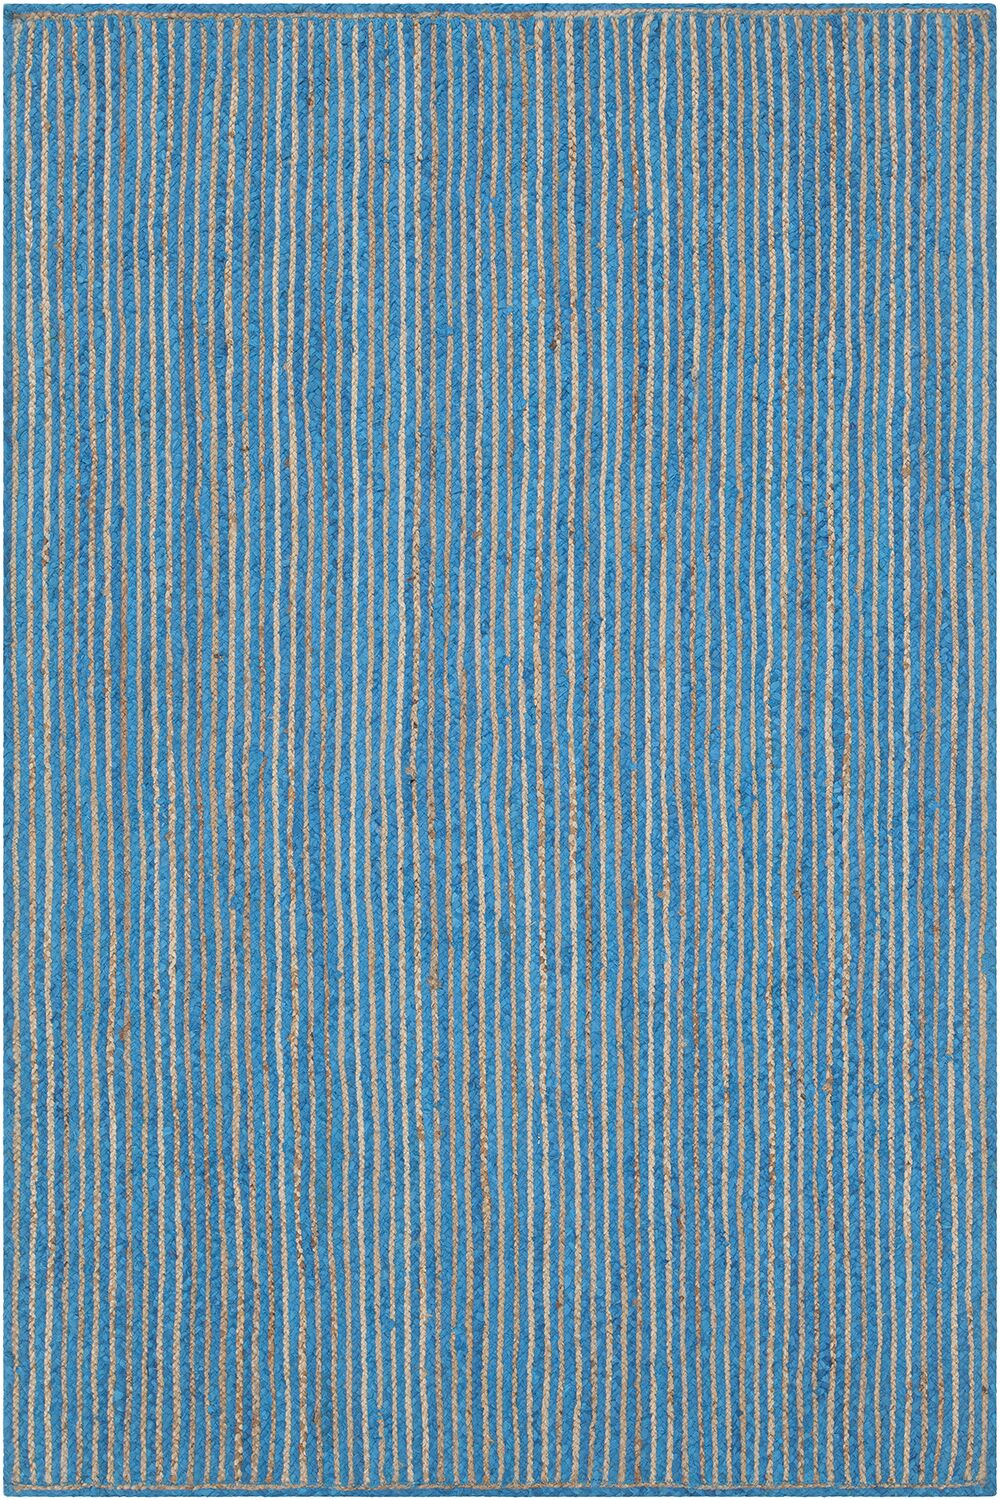 Yother Textured Contemporary Blue Area Rug Rug Size: 7'9